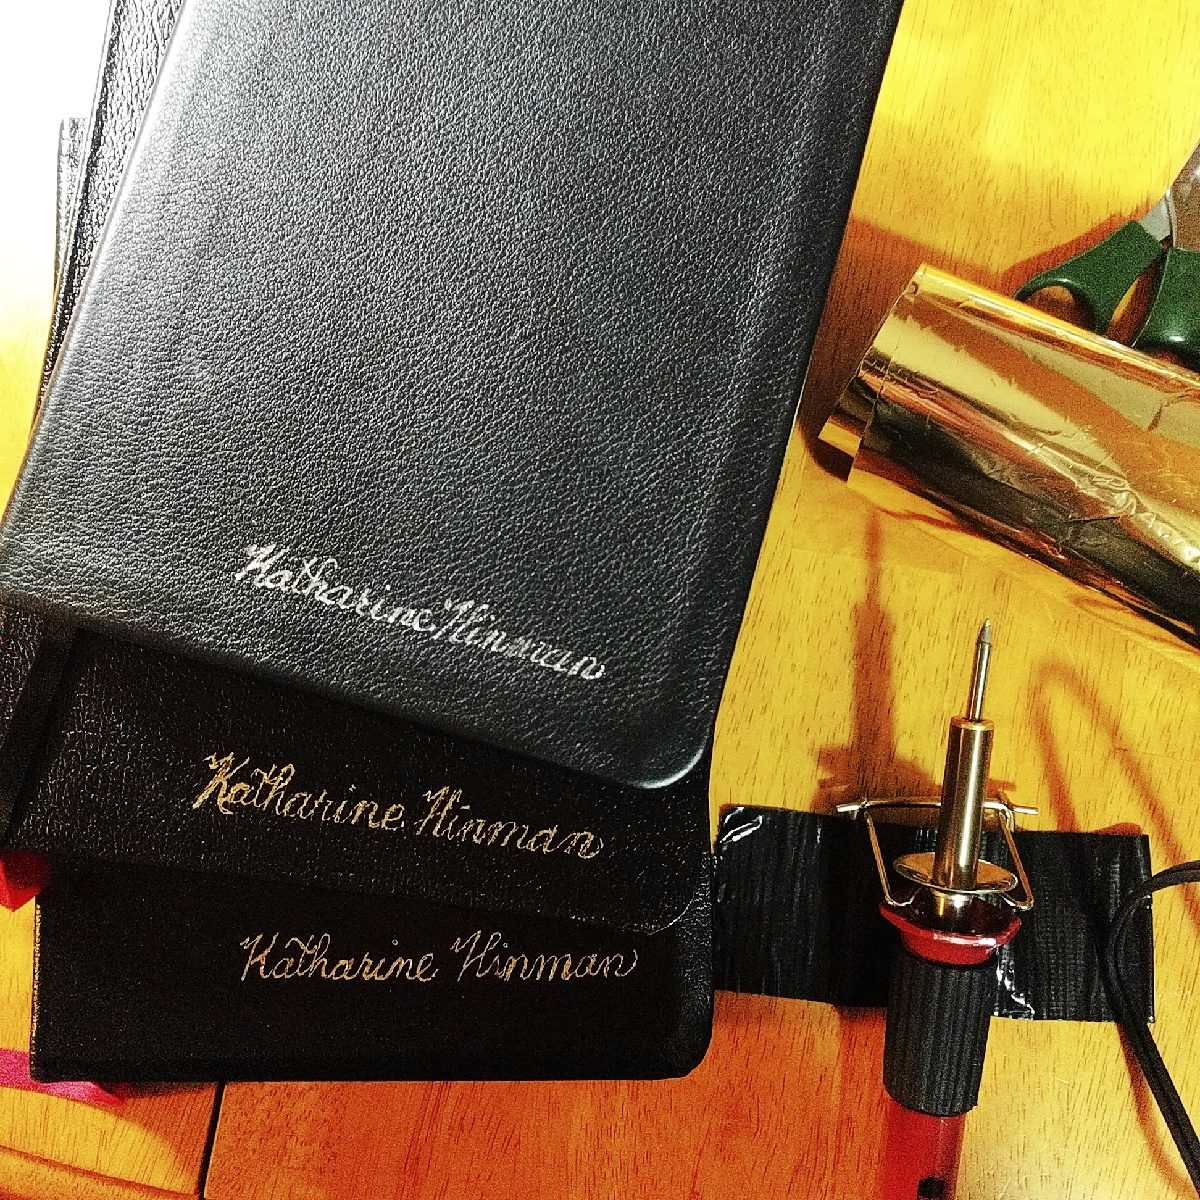 Gold or Silver Leather Embossing on Bibles, Hymnals and Books